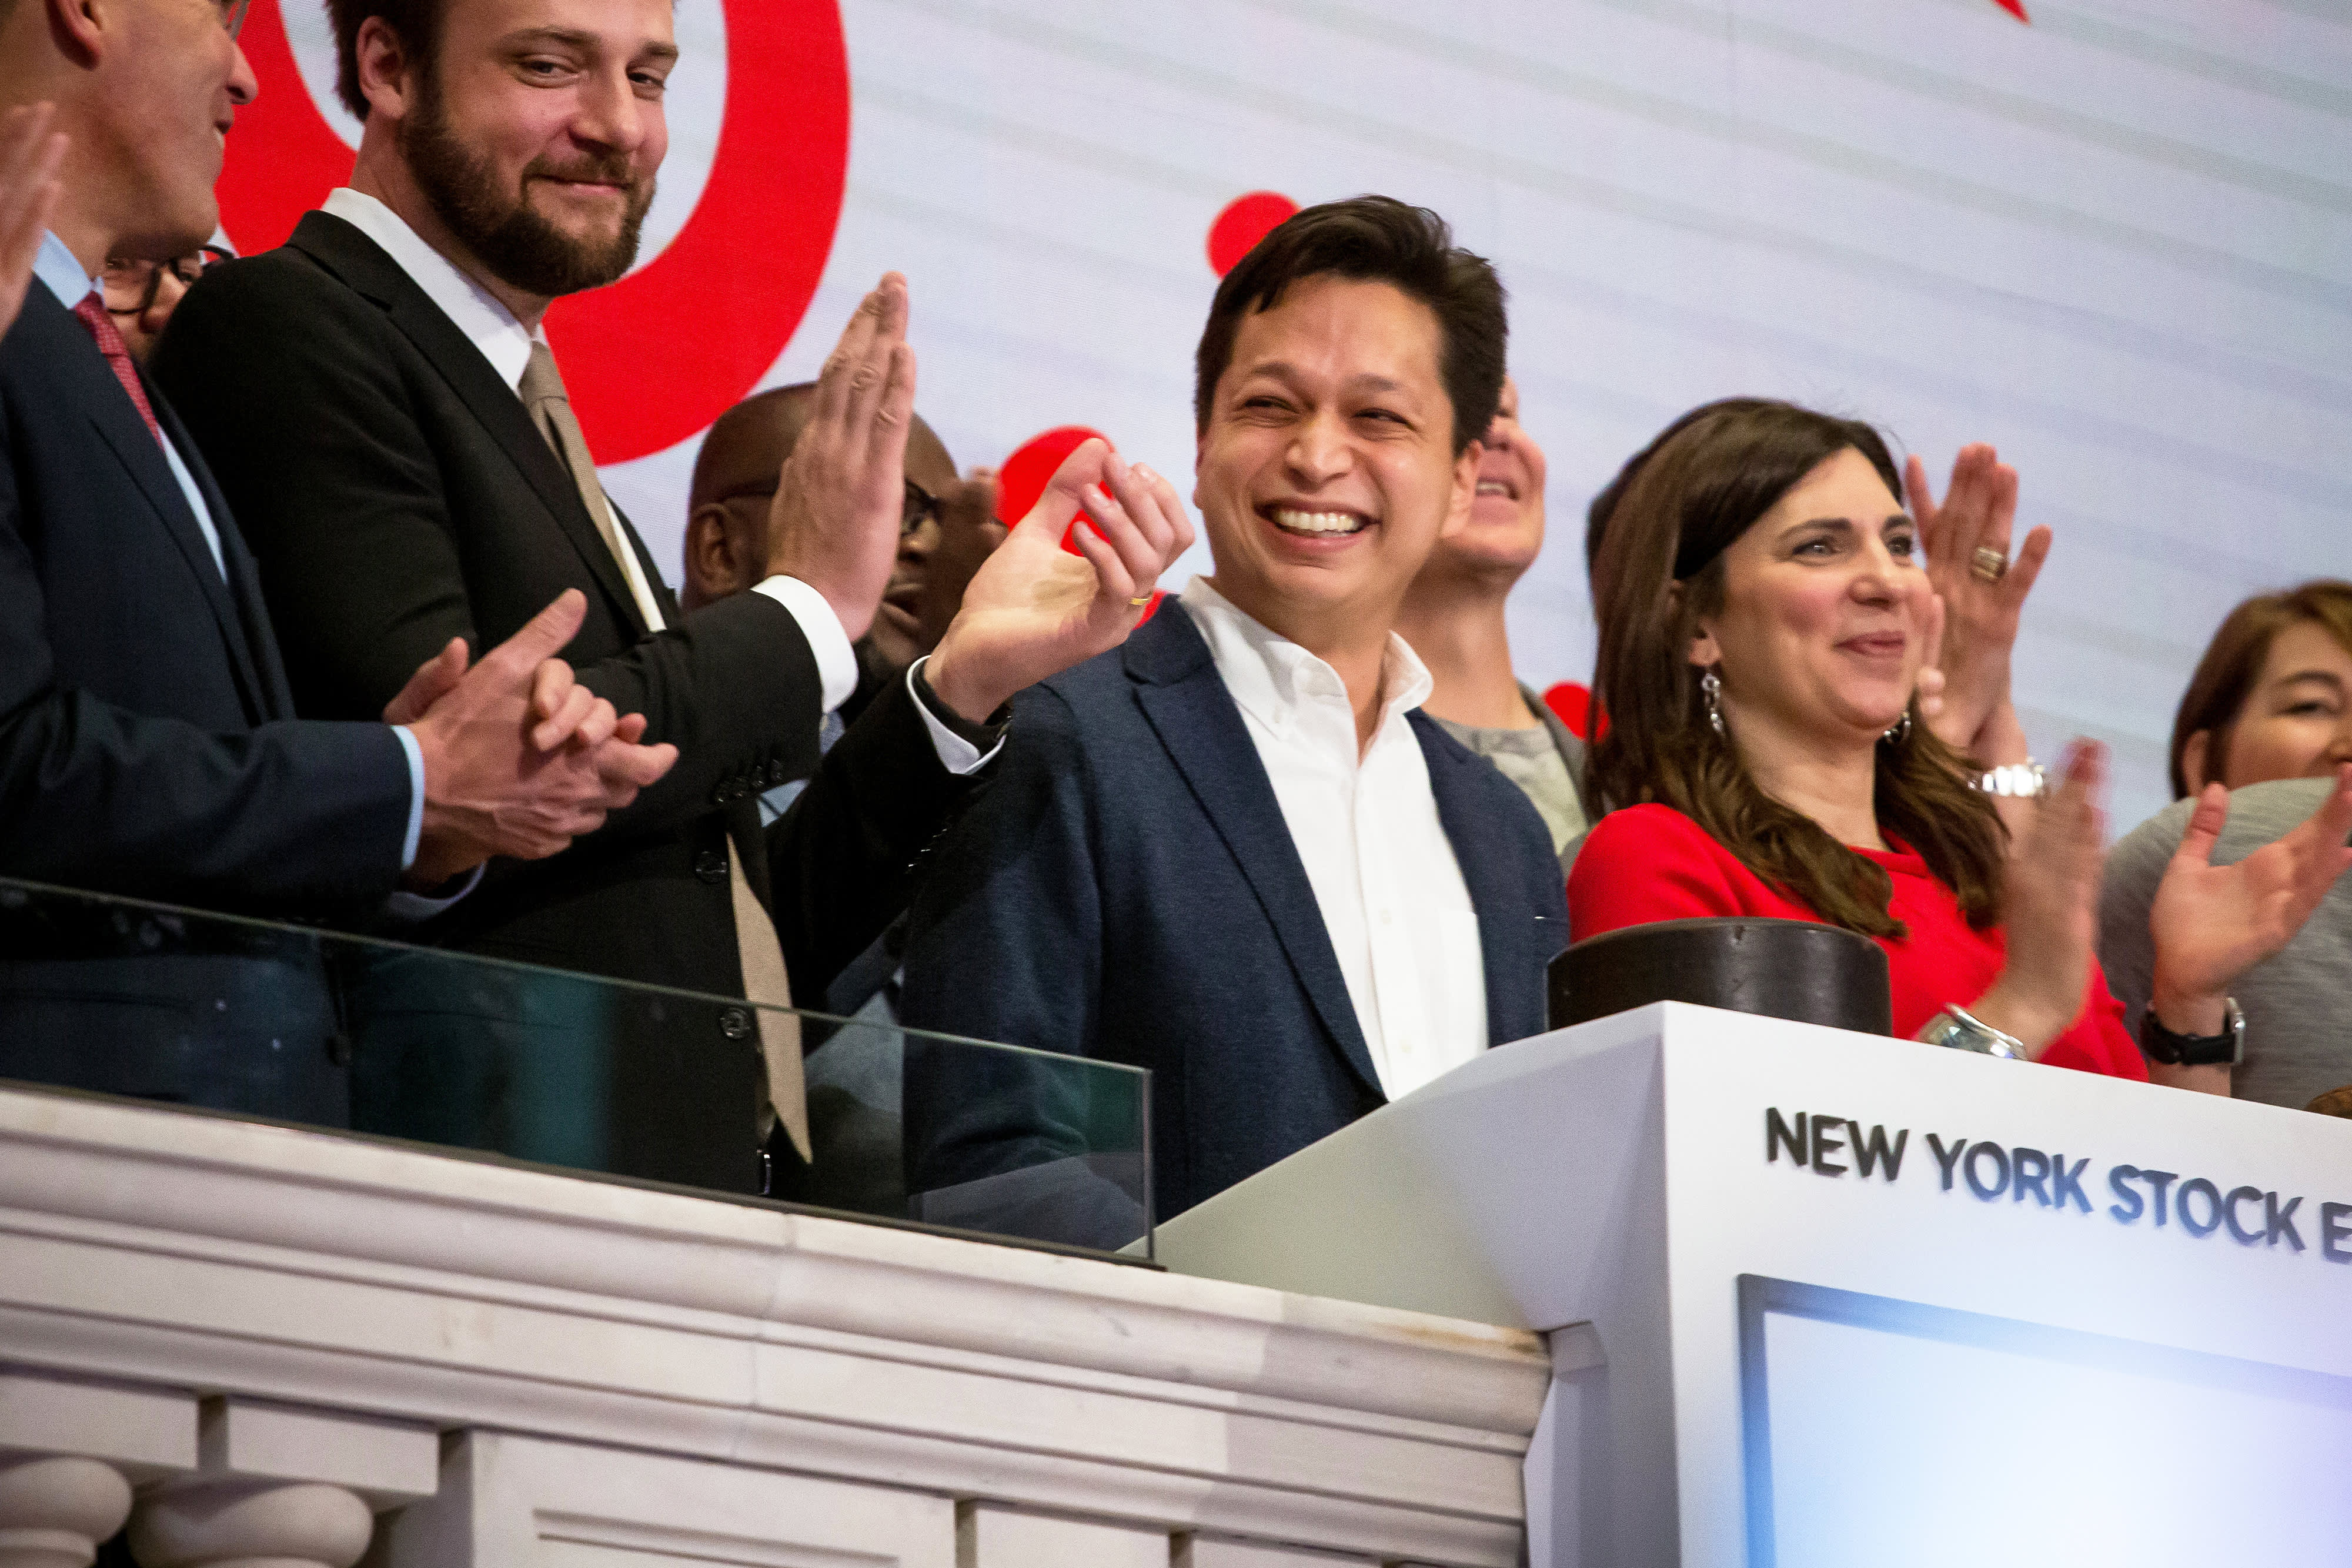 Pinterest is about to release its first earnings report as a public company